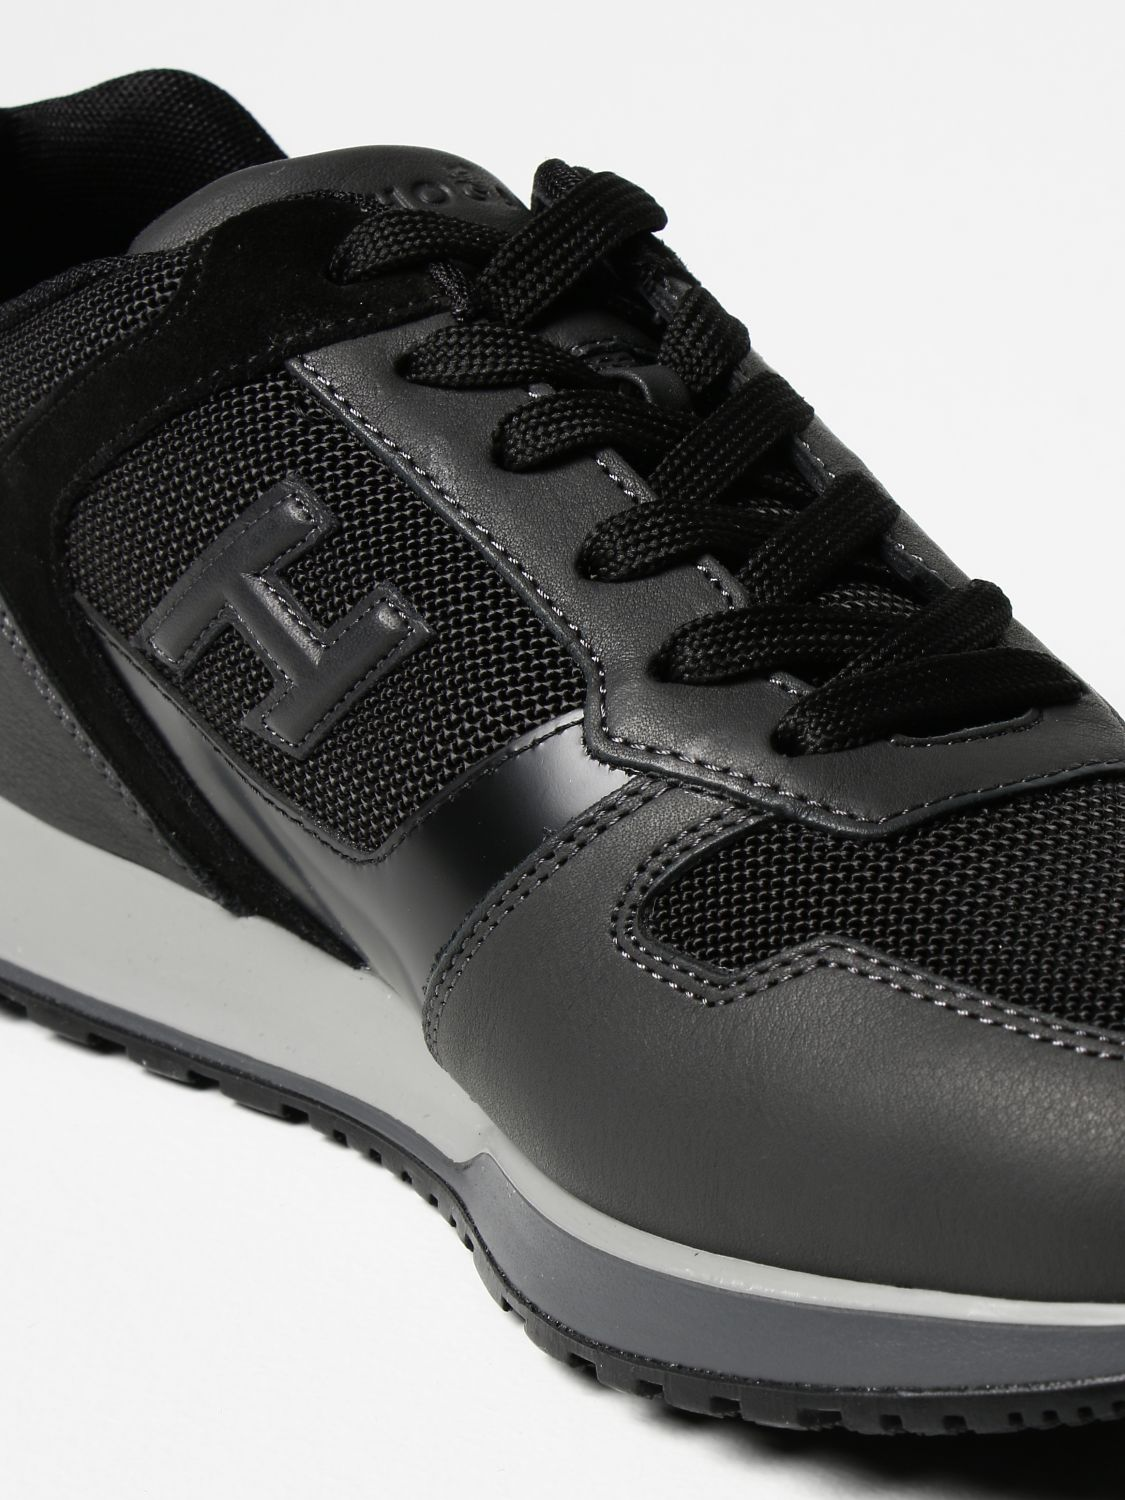 H321 Hogan sneakers in leather and mesh